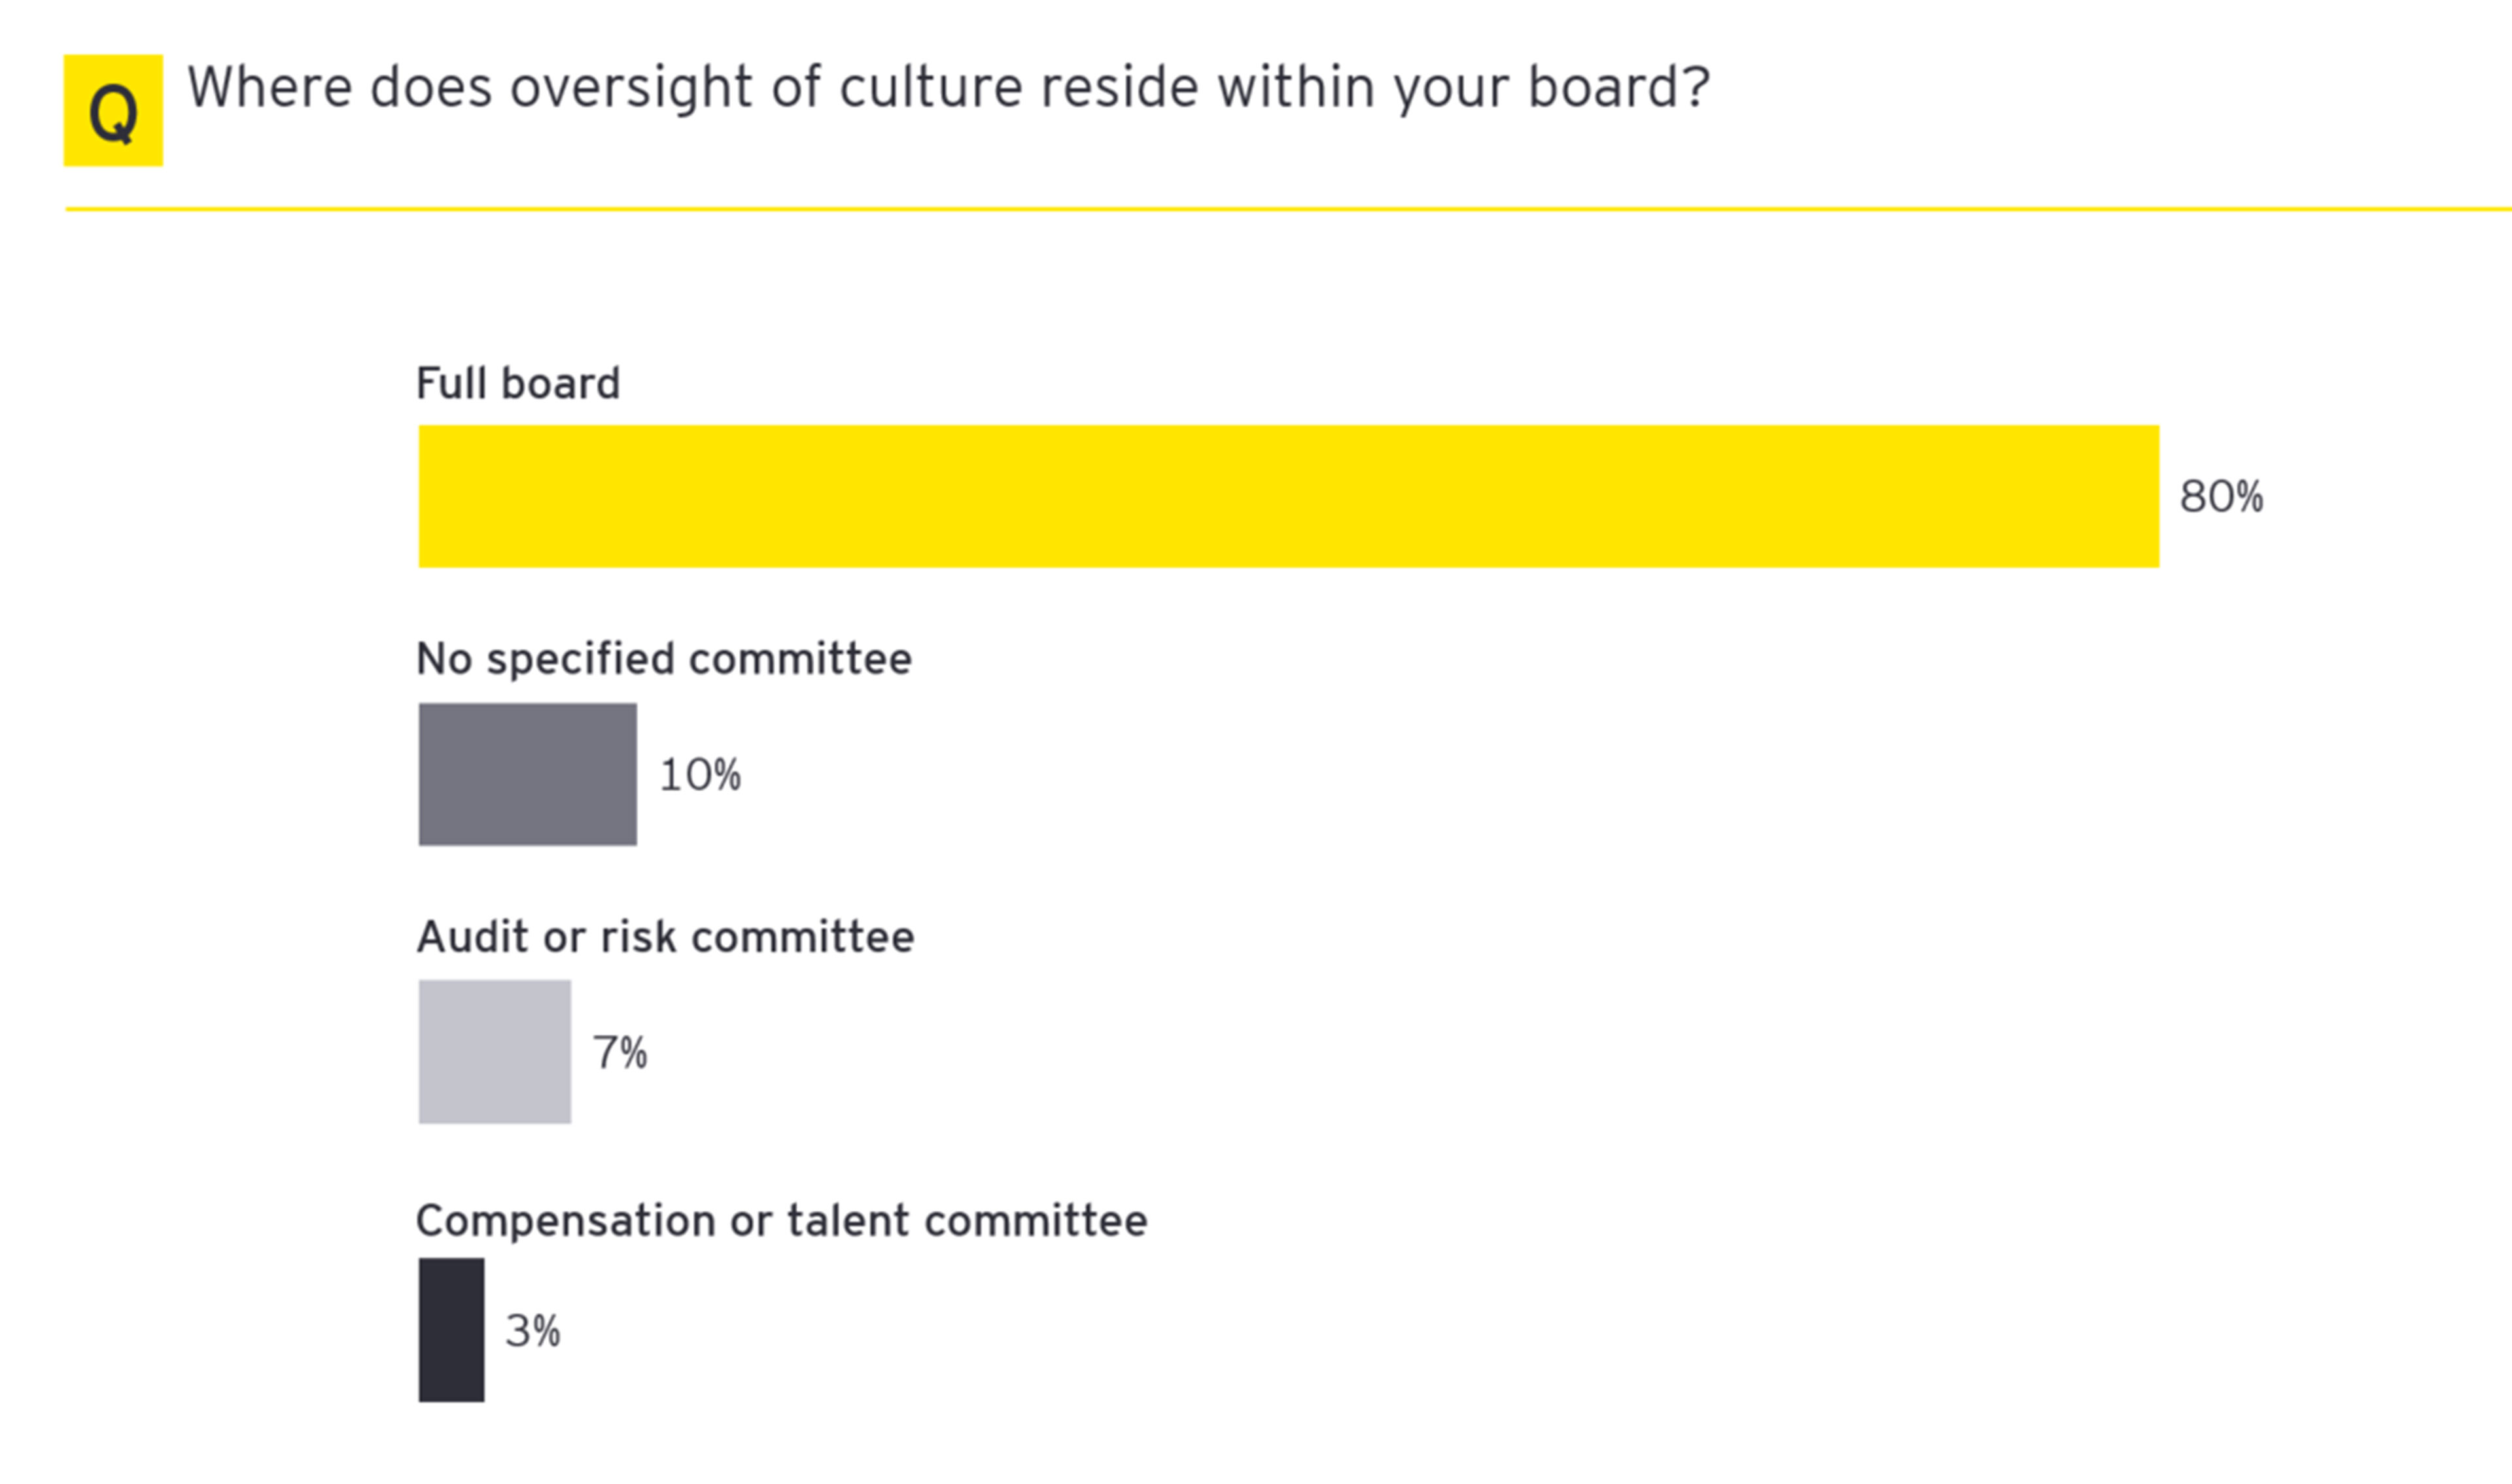 Where does oversight of culture reside within your board